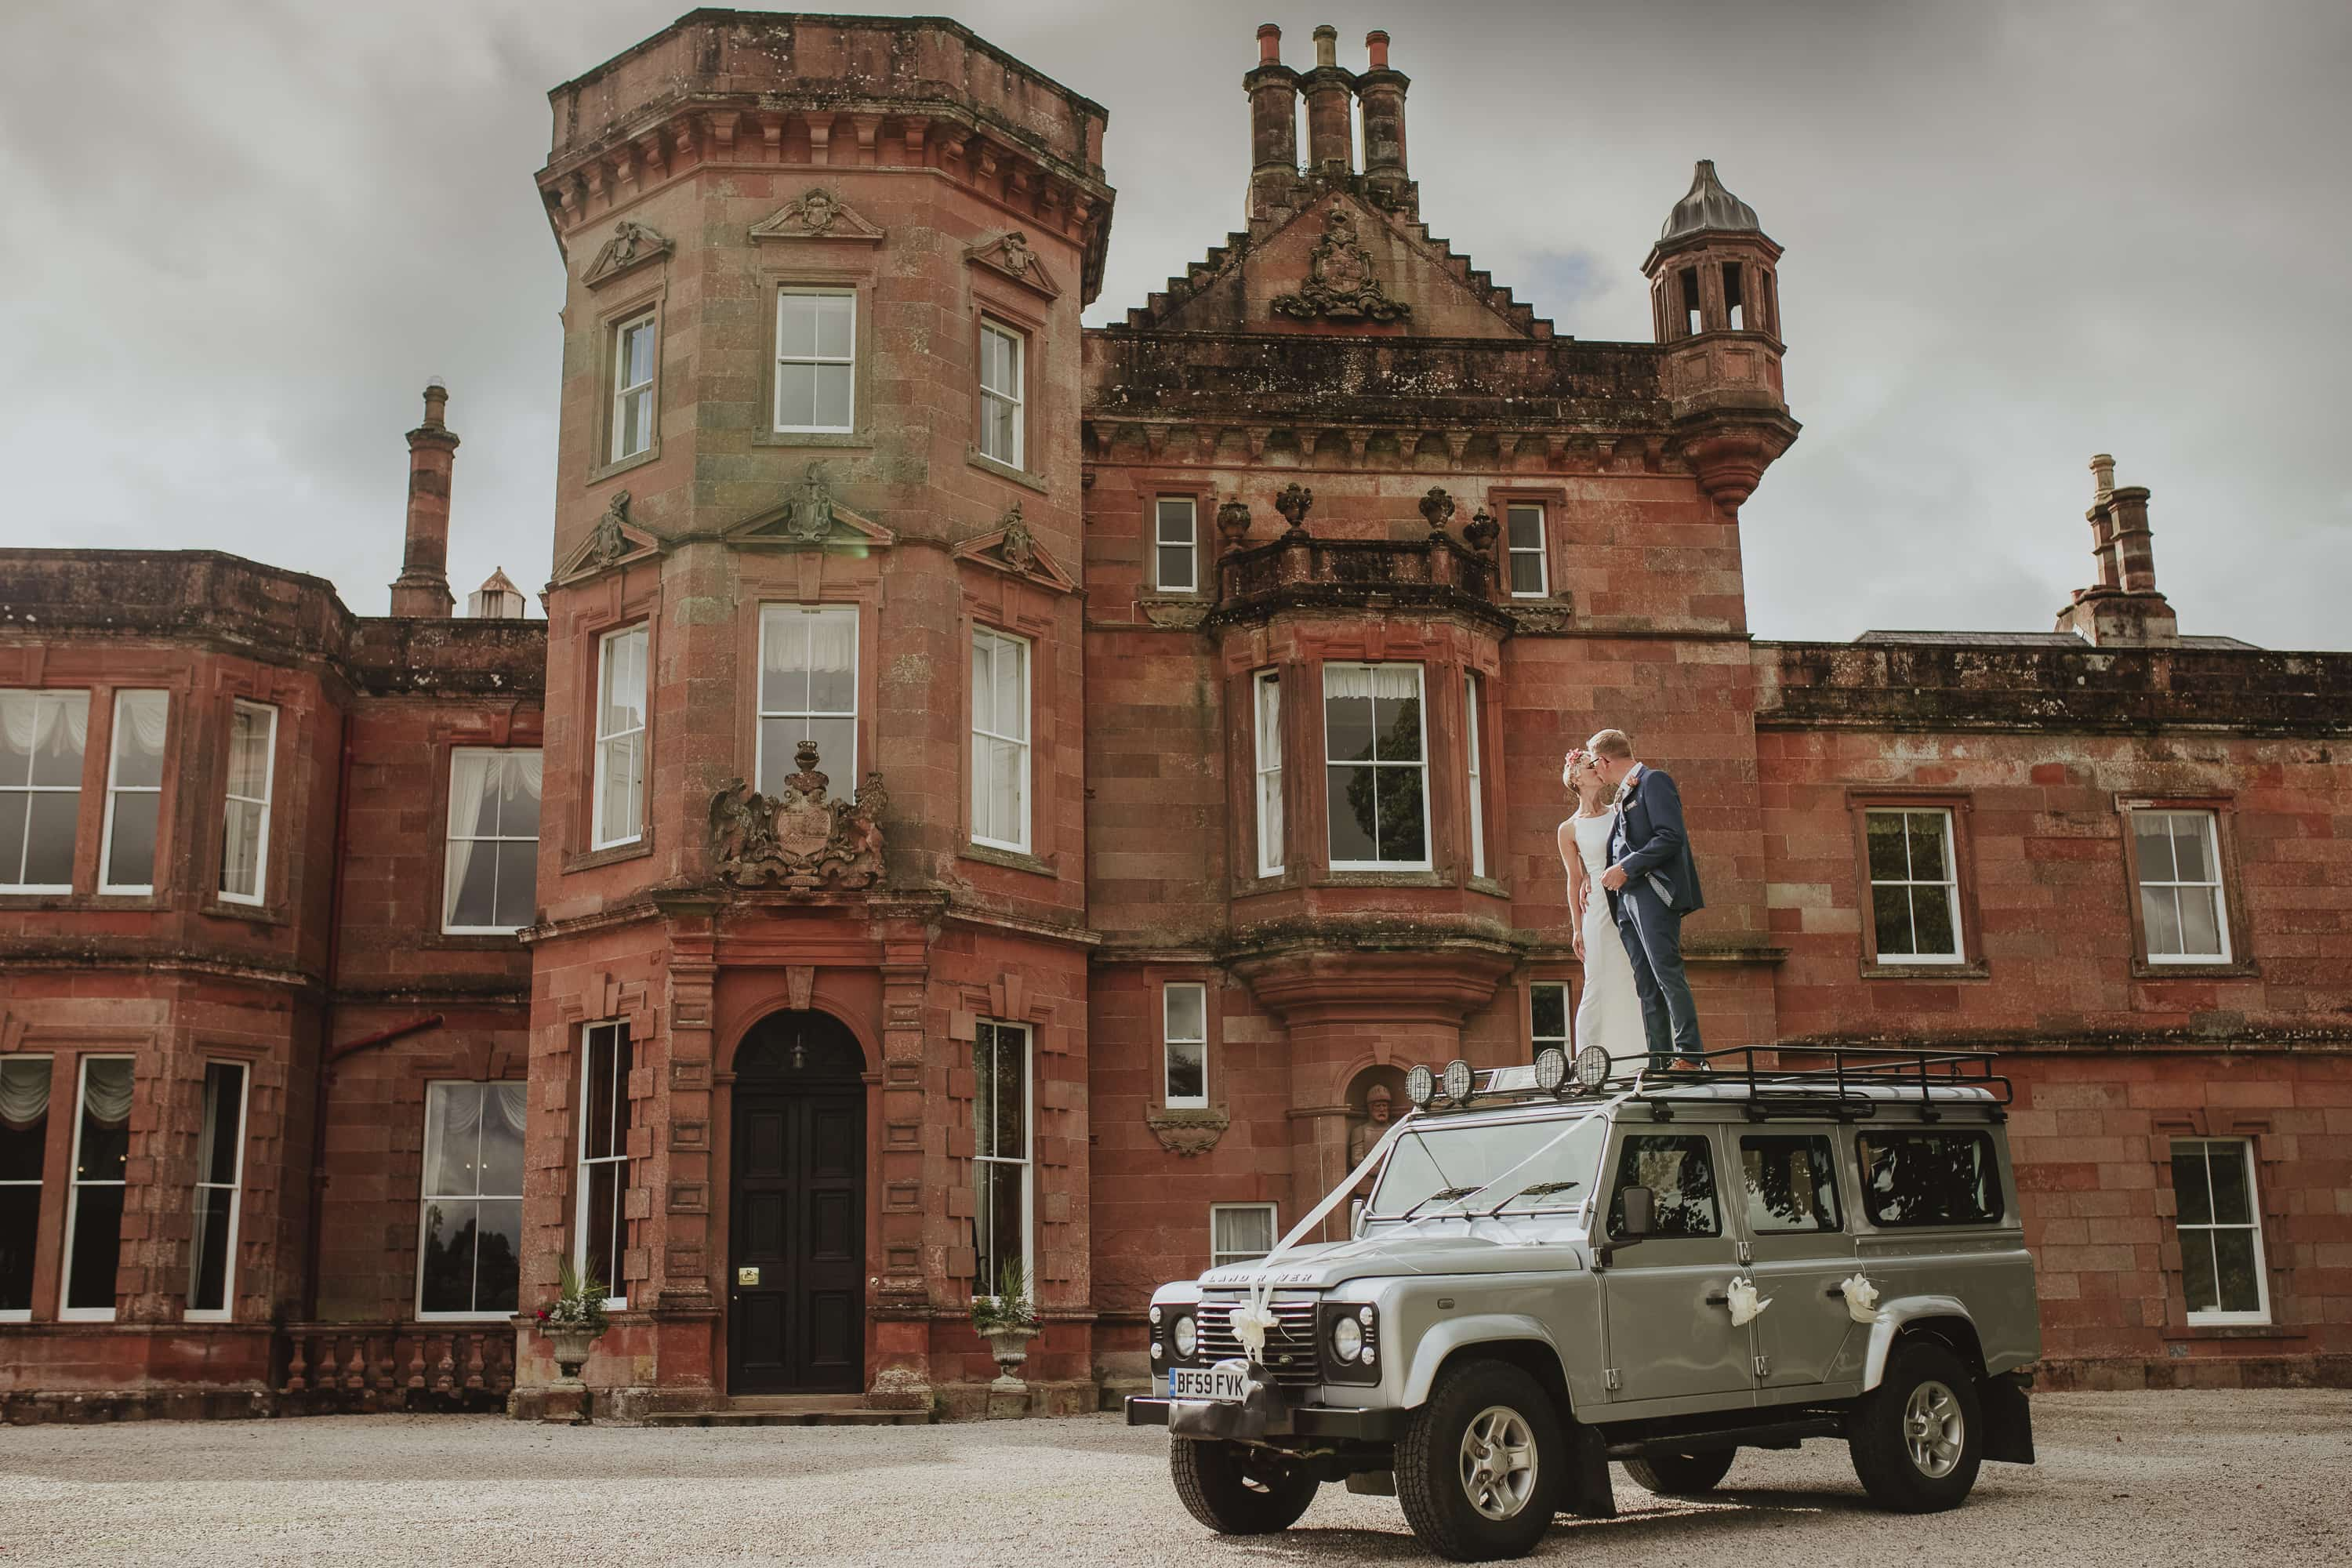 Bride and Groom stood on top of a landrover in Cumbria